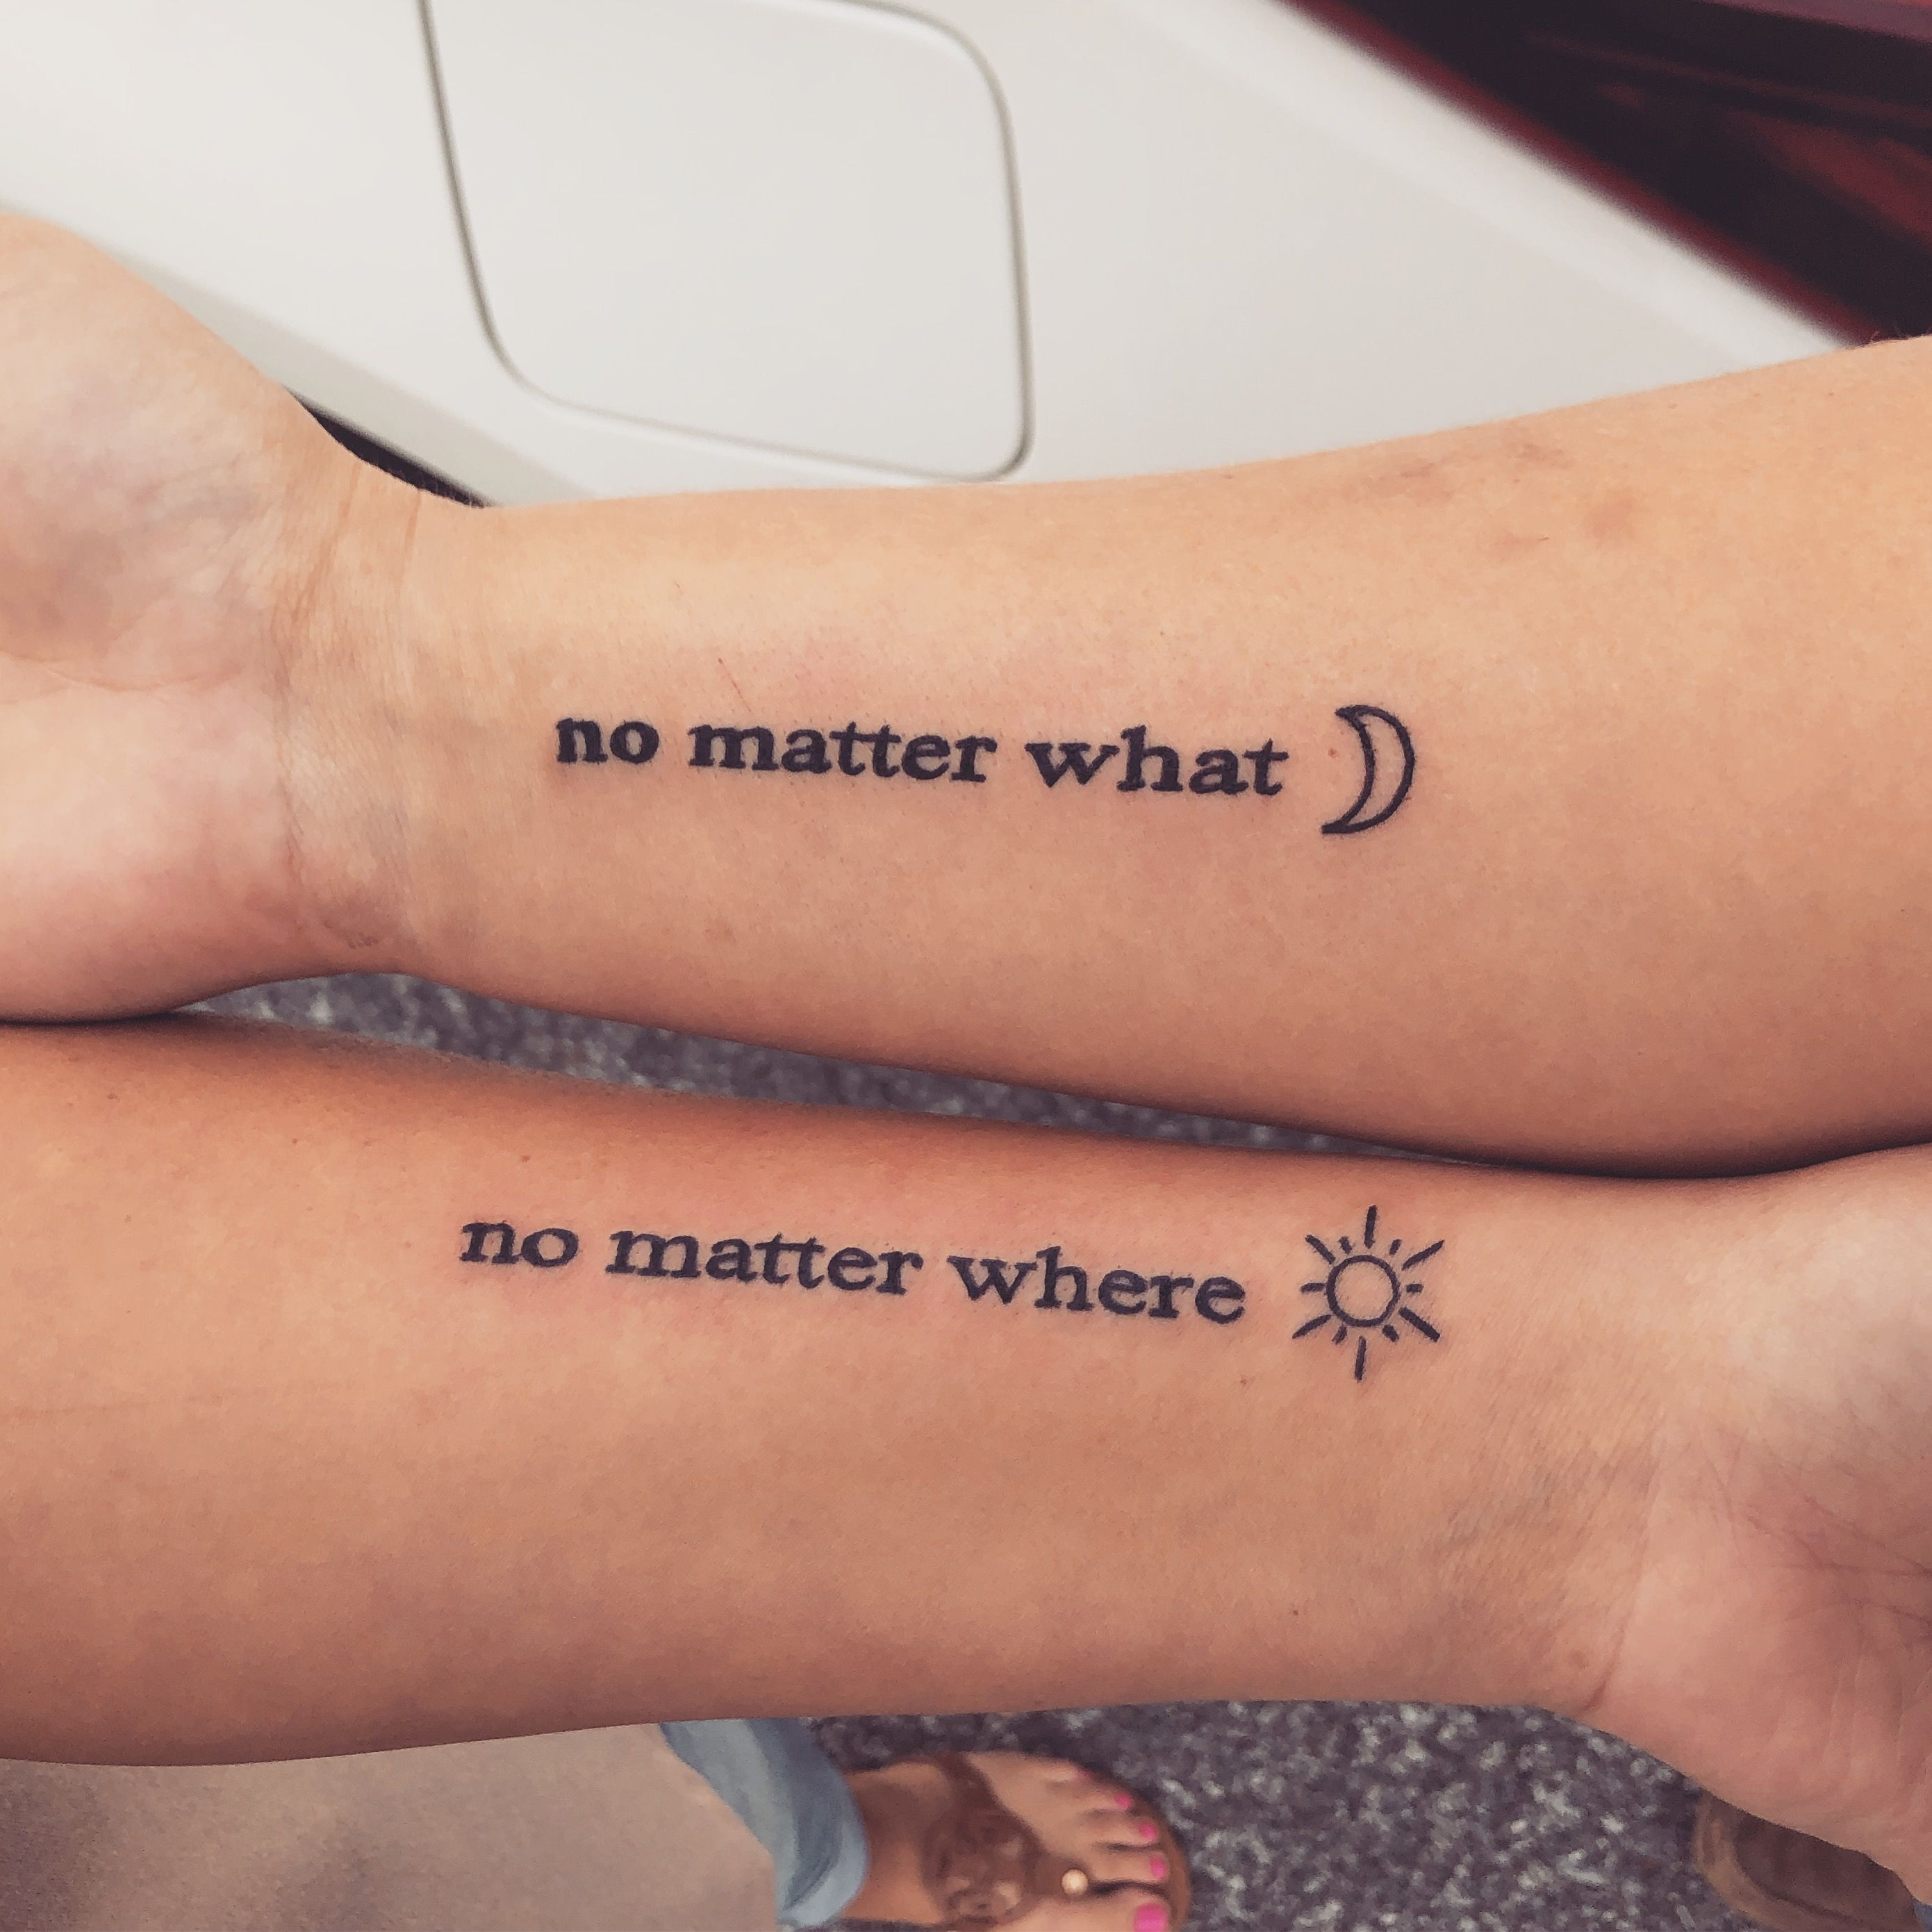 Best friend tattoos 💜